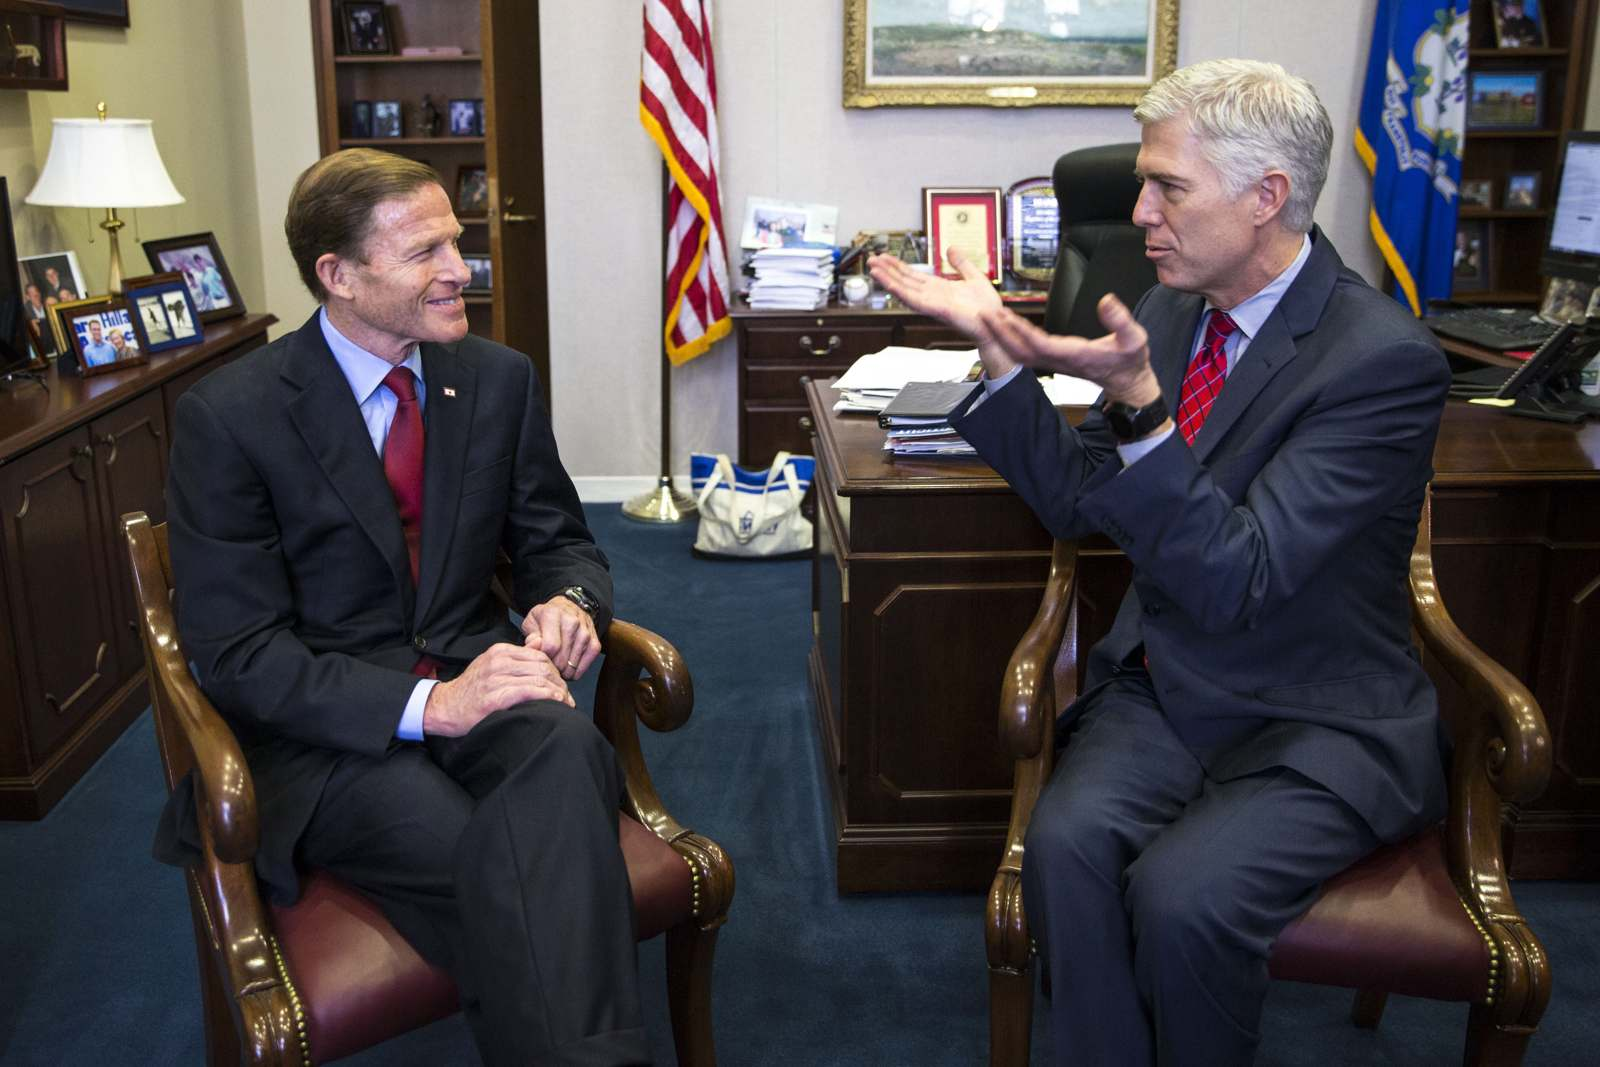 Judge Neil Gorsuch, President Donald Trump's pick for the Supreme Court vacancy, meets with Sen. Richard Blumenthal, D-Conn., in his offices on Capitol Hill in Washington, Feb. 8, 2017. (Al Drago/The New York Times)